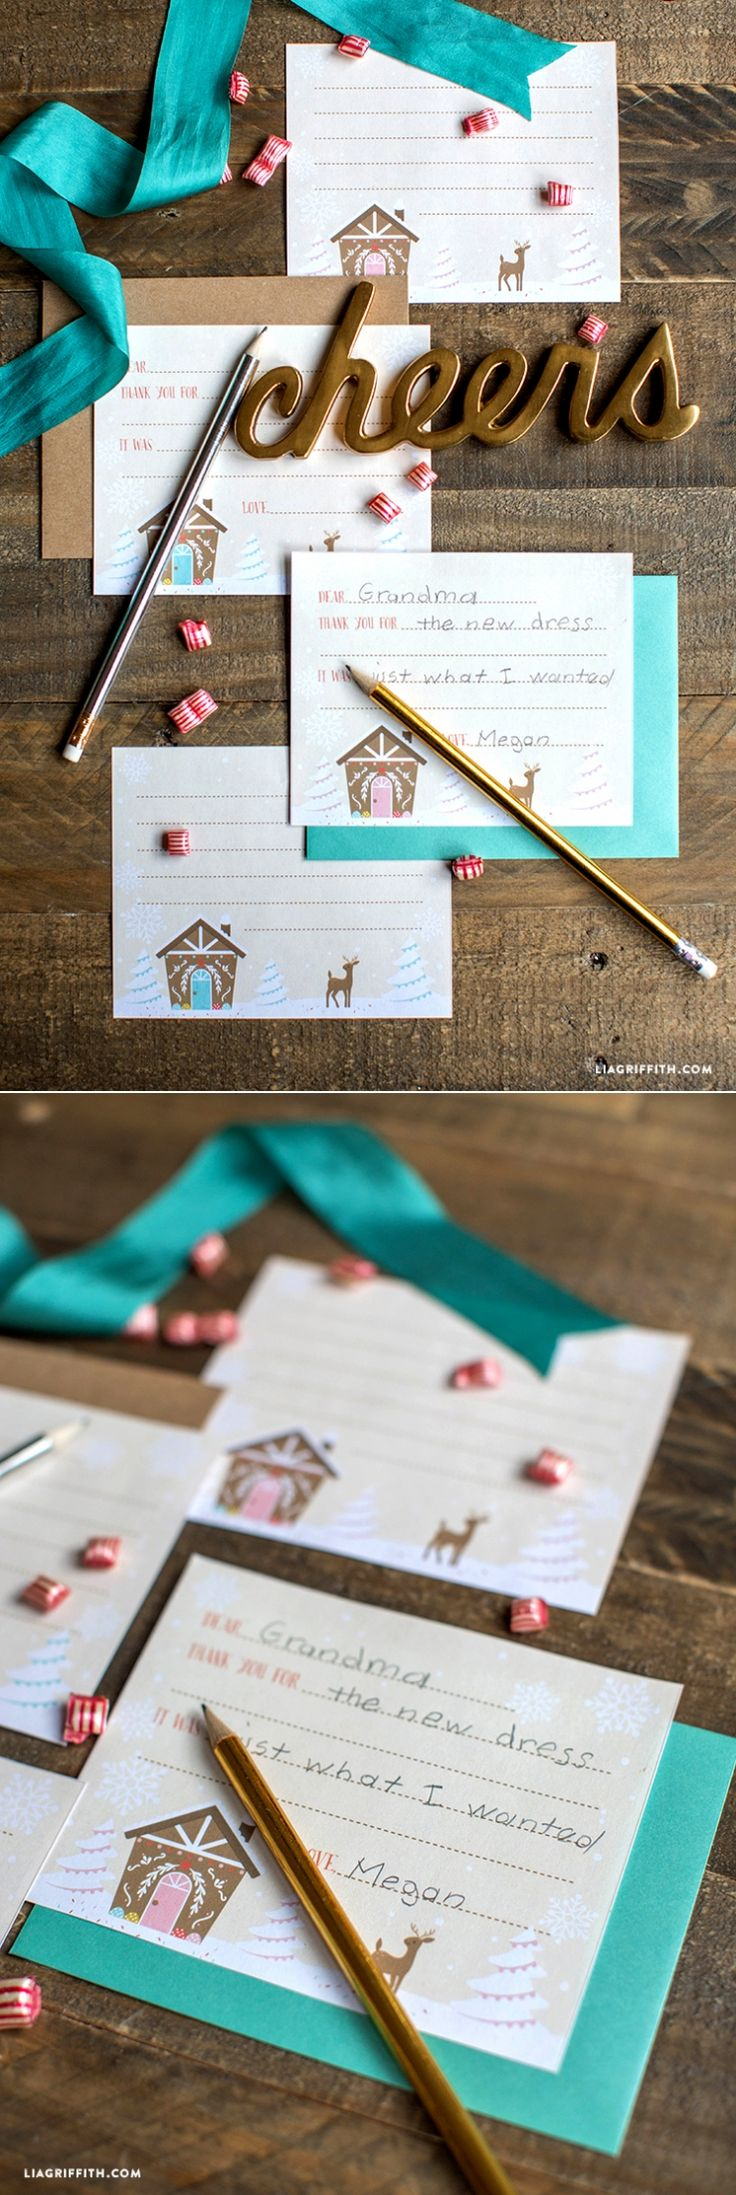 345 Best Printable Gift Wrap And Cards Images On Pinterest